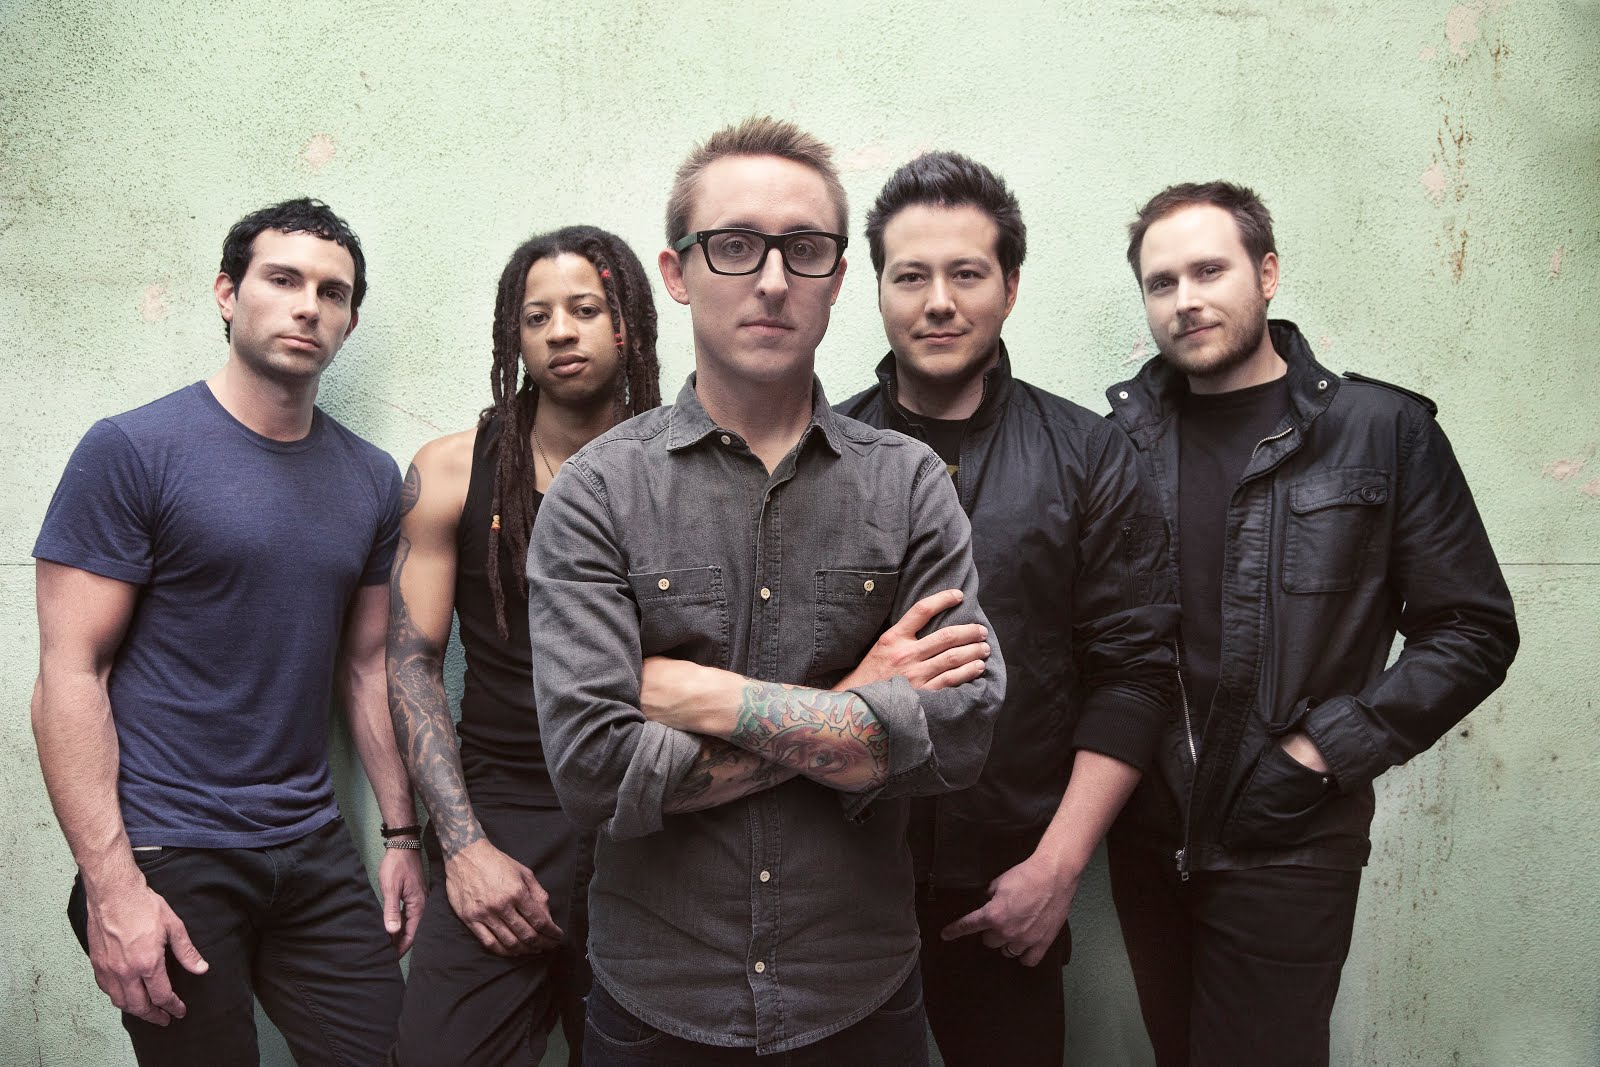 Ryan Key of Yellowcard